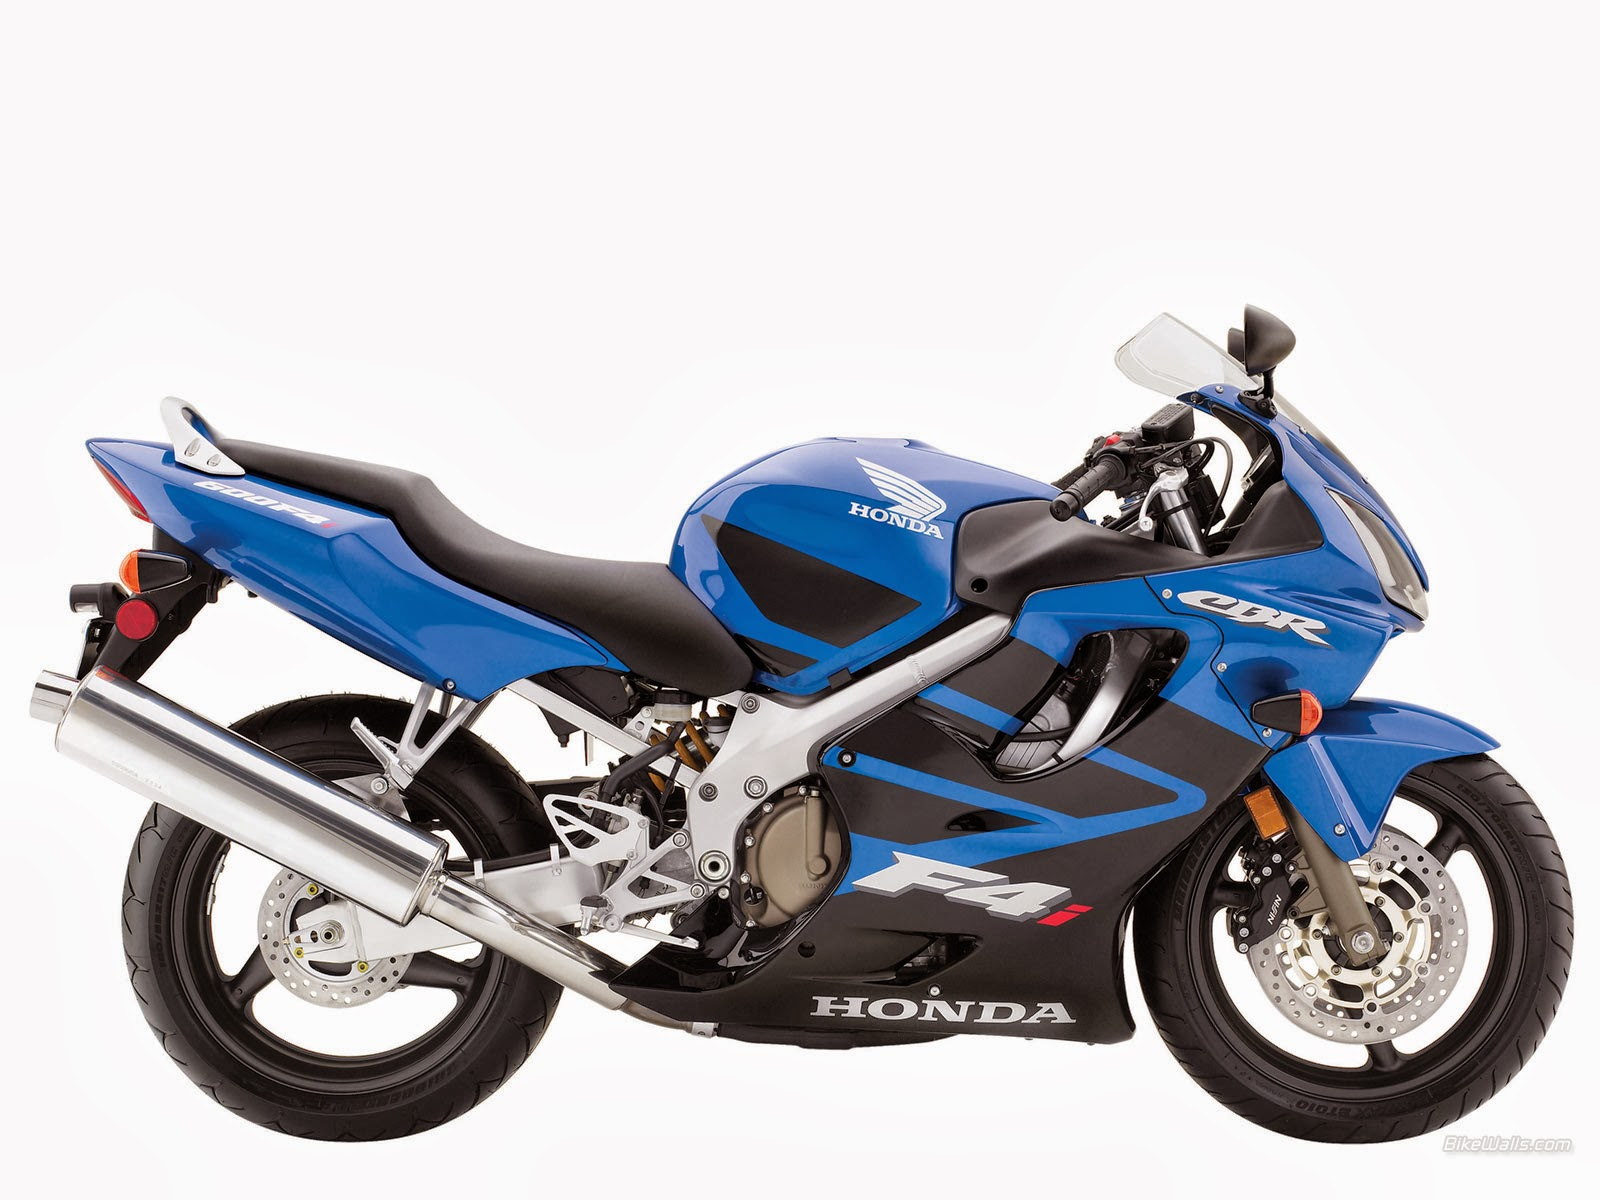 onlineservicemanuals honda cbr 600 f4i service manual e book rh in the  whisps blogspot com f4i